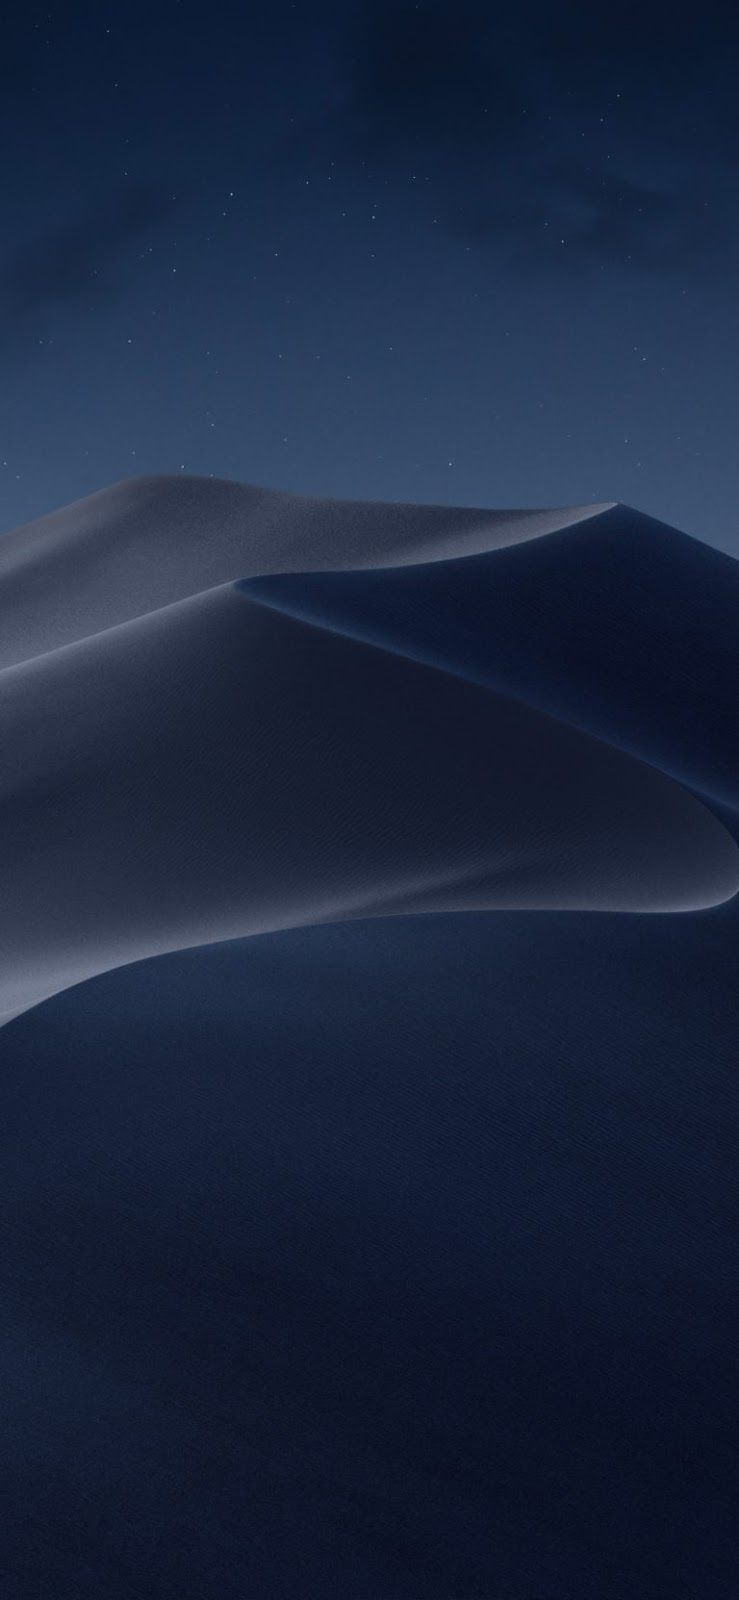 Download The Macos 10 14 Mojave Light Dark Wallpaper For Your Ios Devices Mkbhd Wallpapers Dark Wallpaper Ios Wallpapers